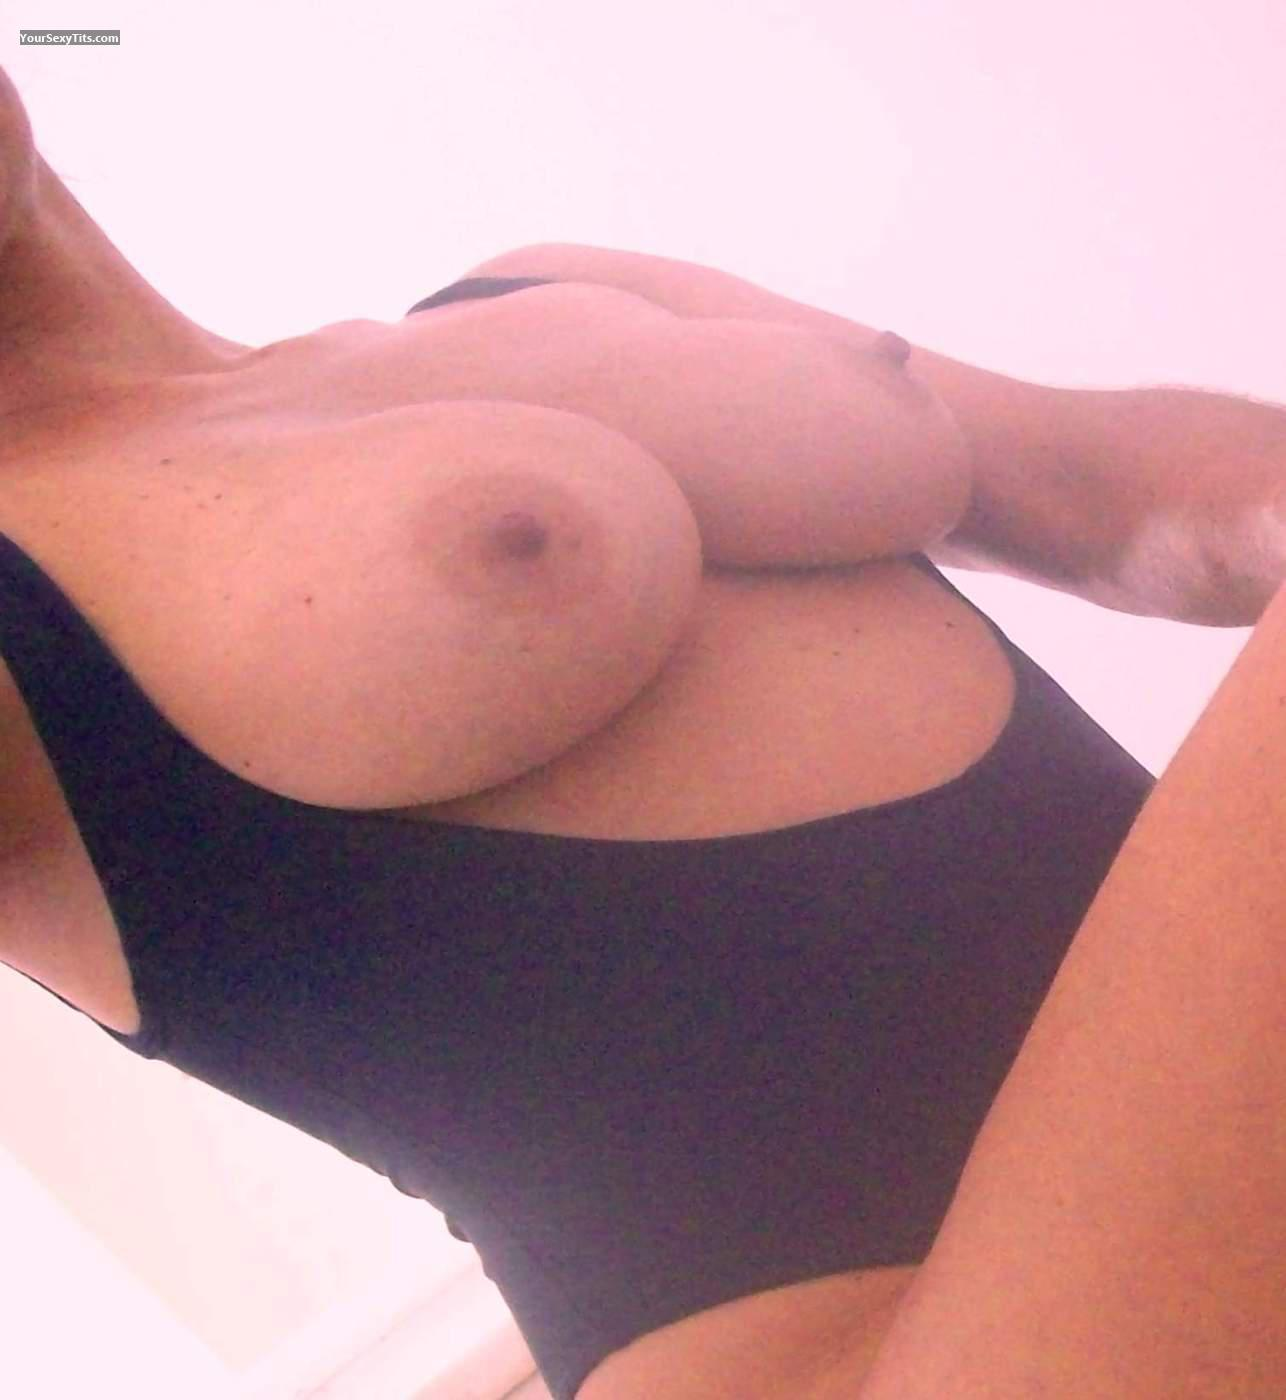 Medium Tits Fernanda From Brazil